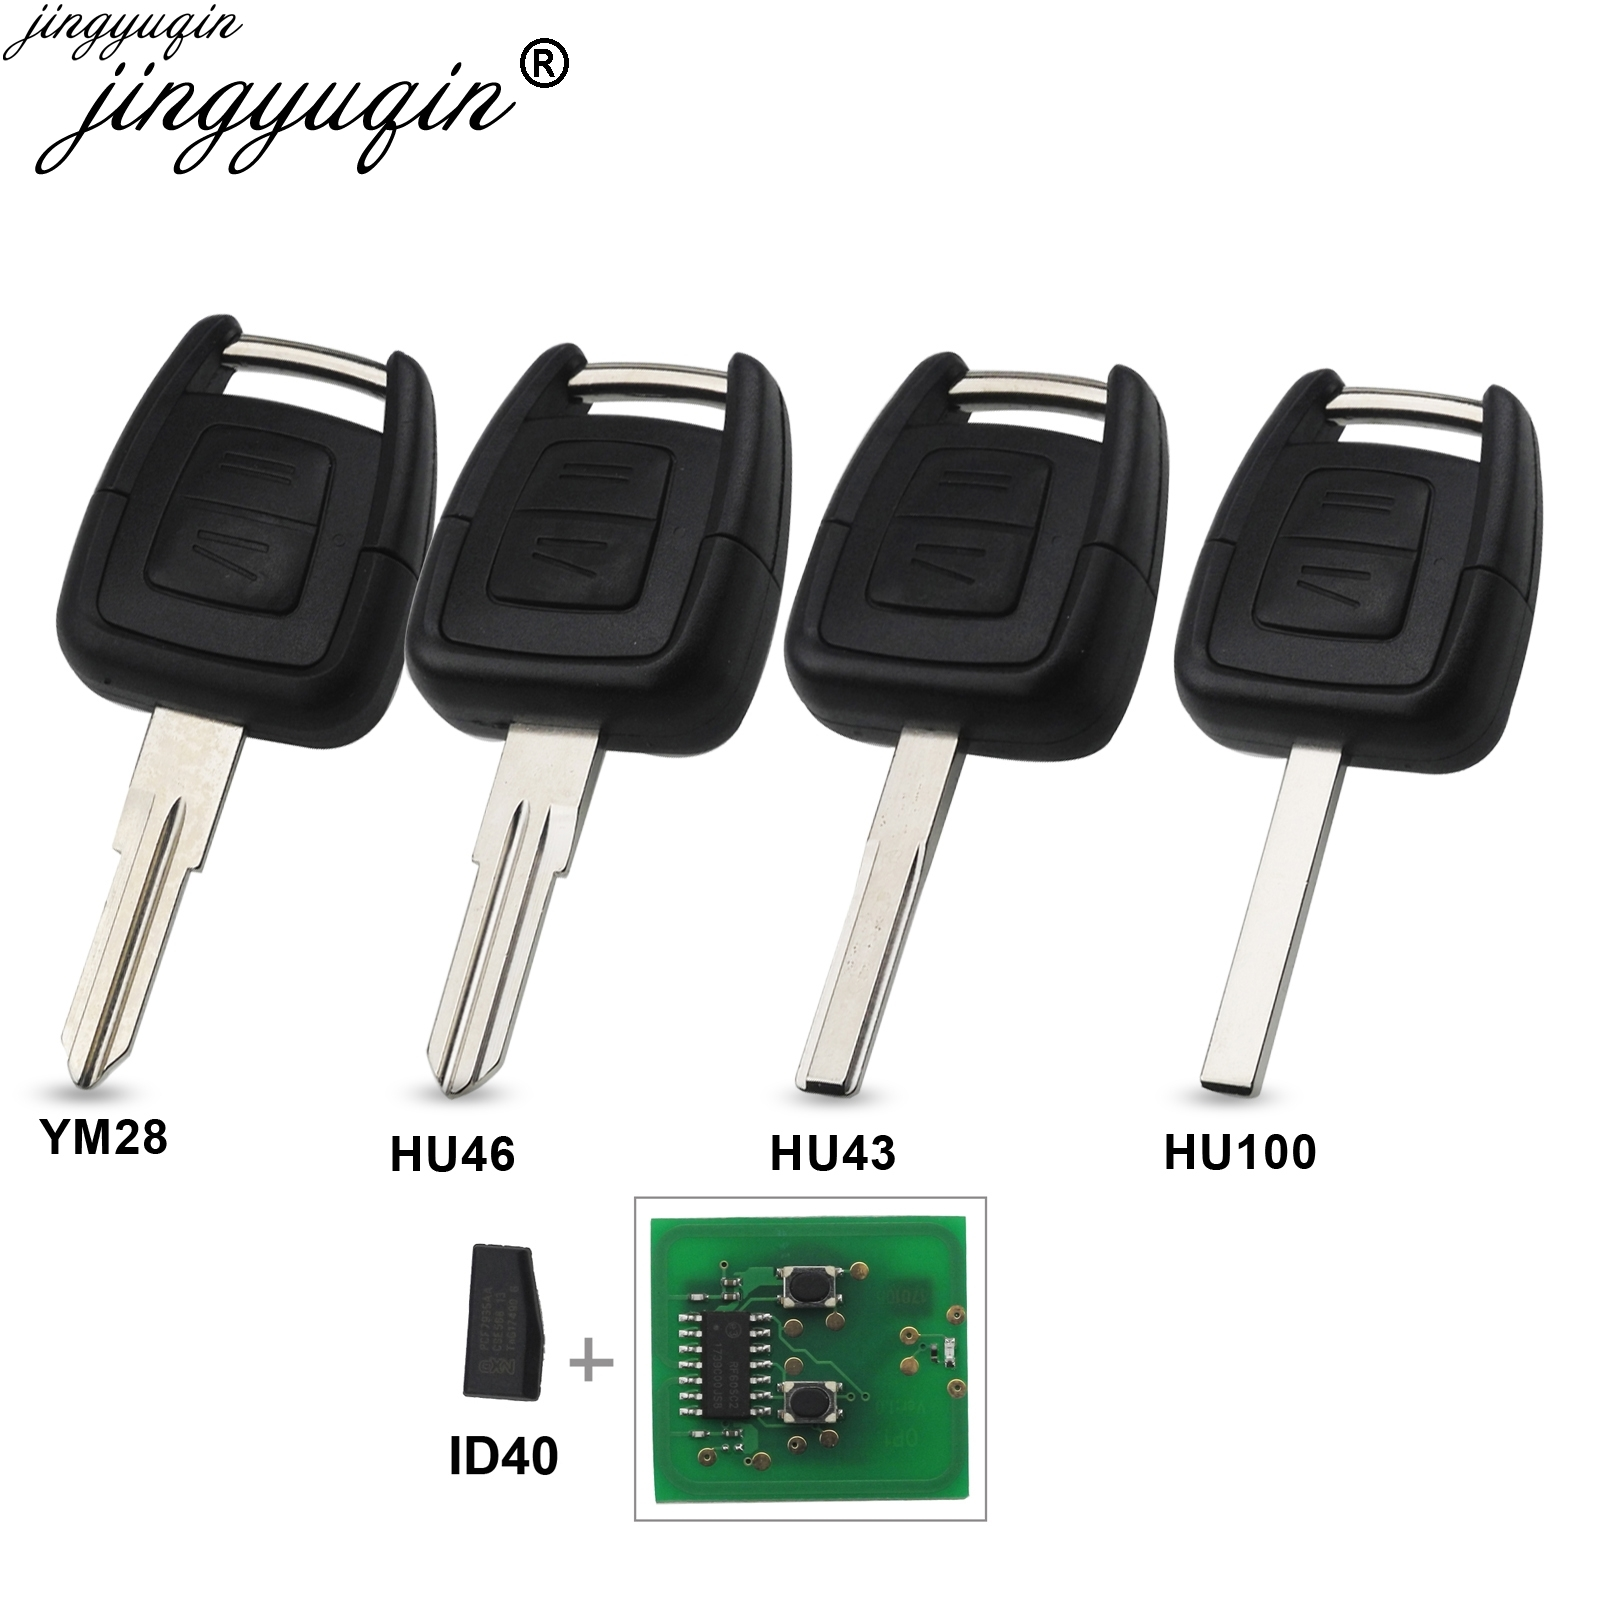 Jingyuqin 2 Buttons Smart <font><b>Remote</b></font> car <font><b>Key</b></font> Shell 433Mhz for <font><b>OPEL</b></font> VAUXHALL Vectra Zafira OP1 24424723 With ID40 Chip image